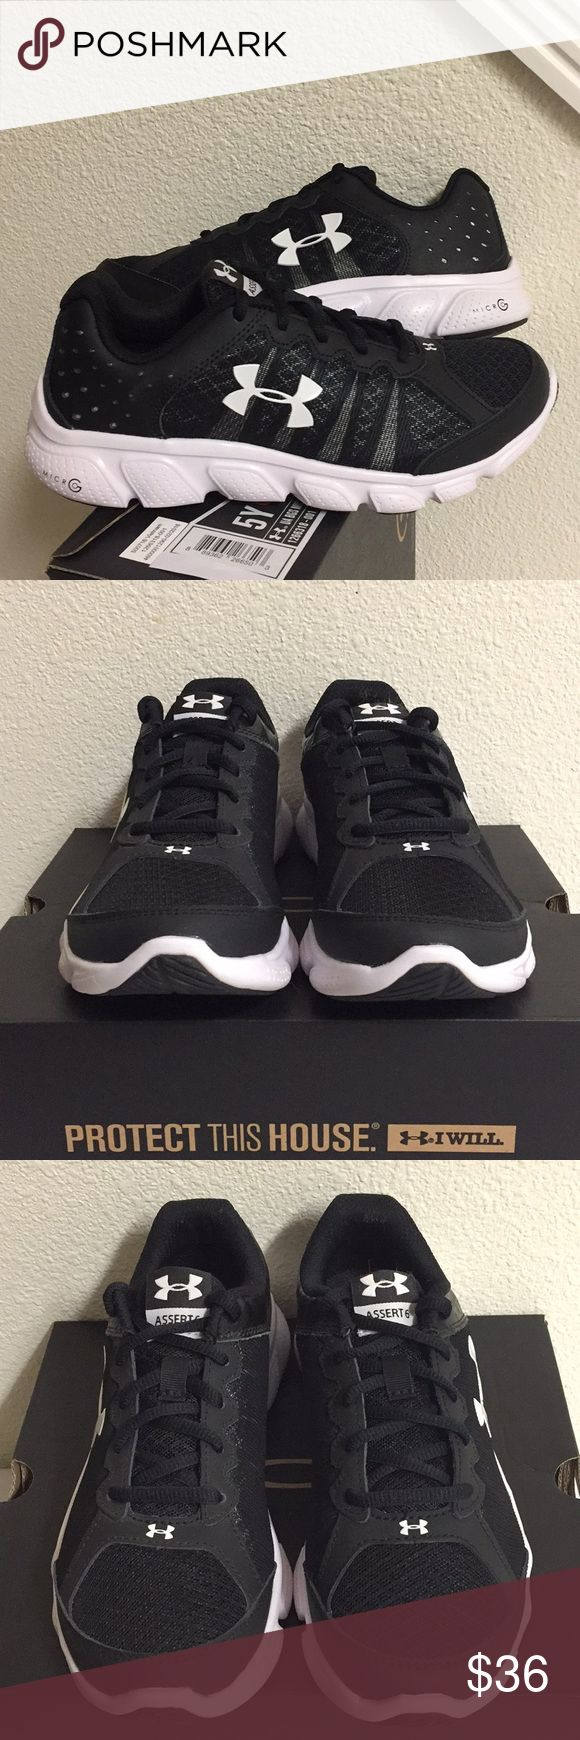 Cheap under armour house shoes Buy